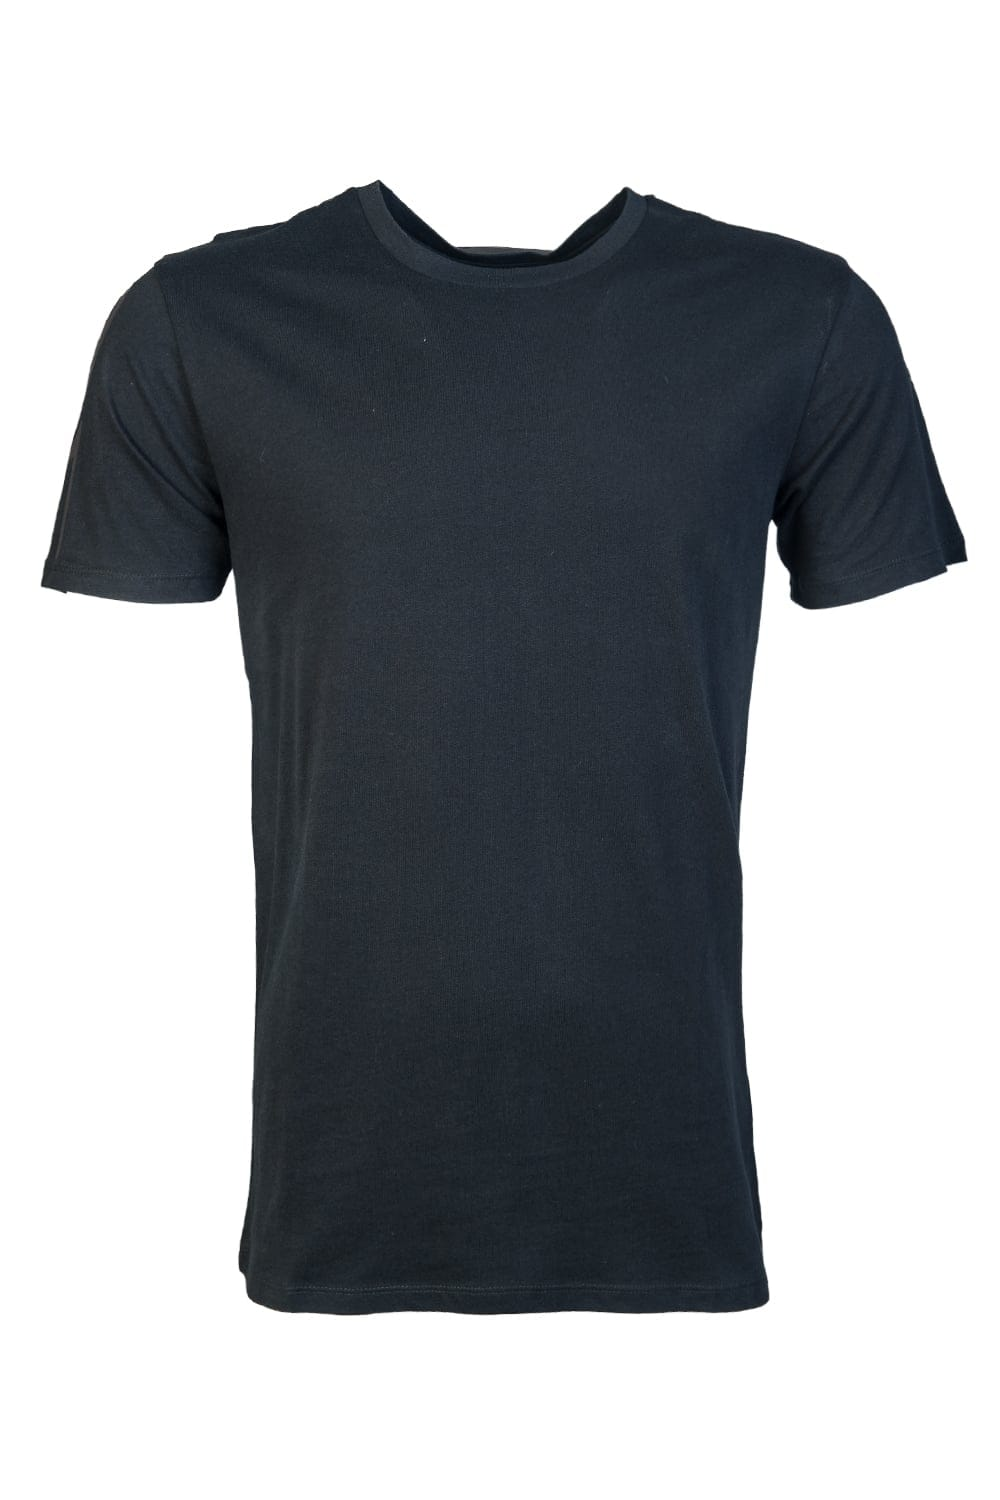 armani jeans t shirt 6x6t656jgnz armani jeans from sage clothing uk. Black Bedroom Furniture Sets. Home Design Ideas